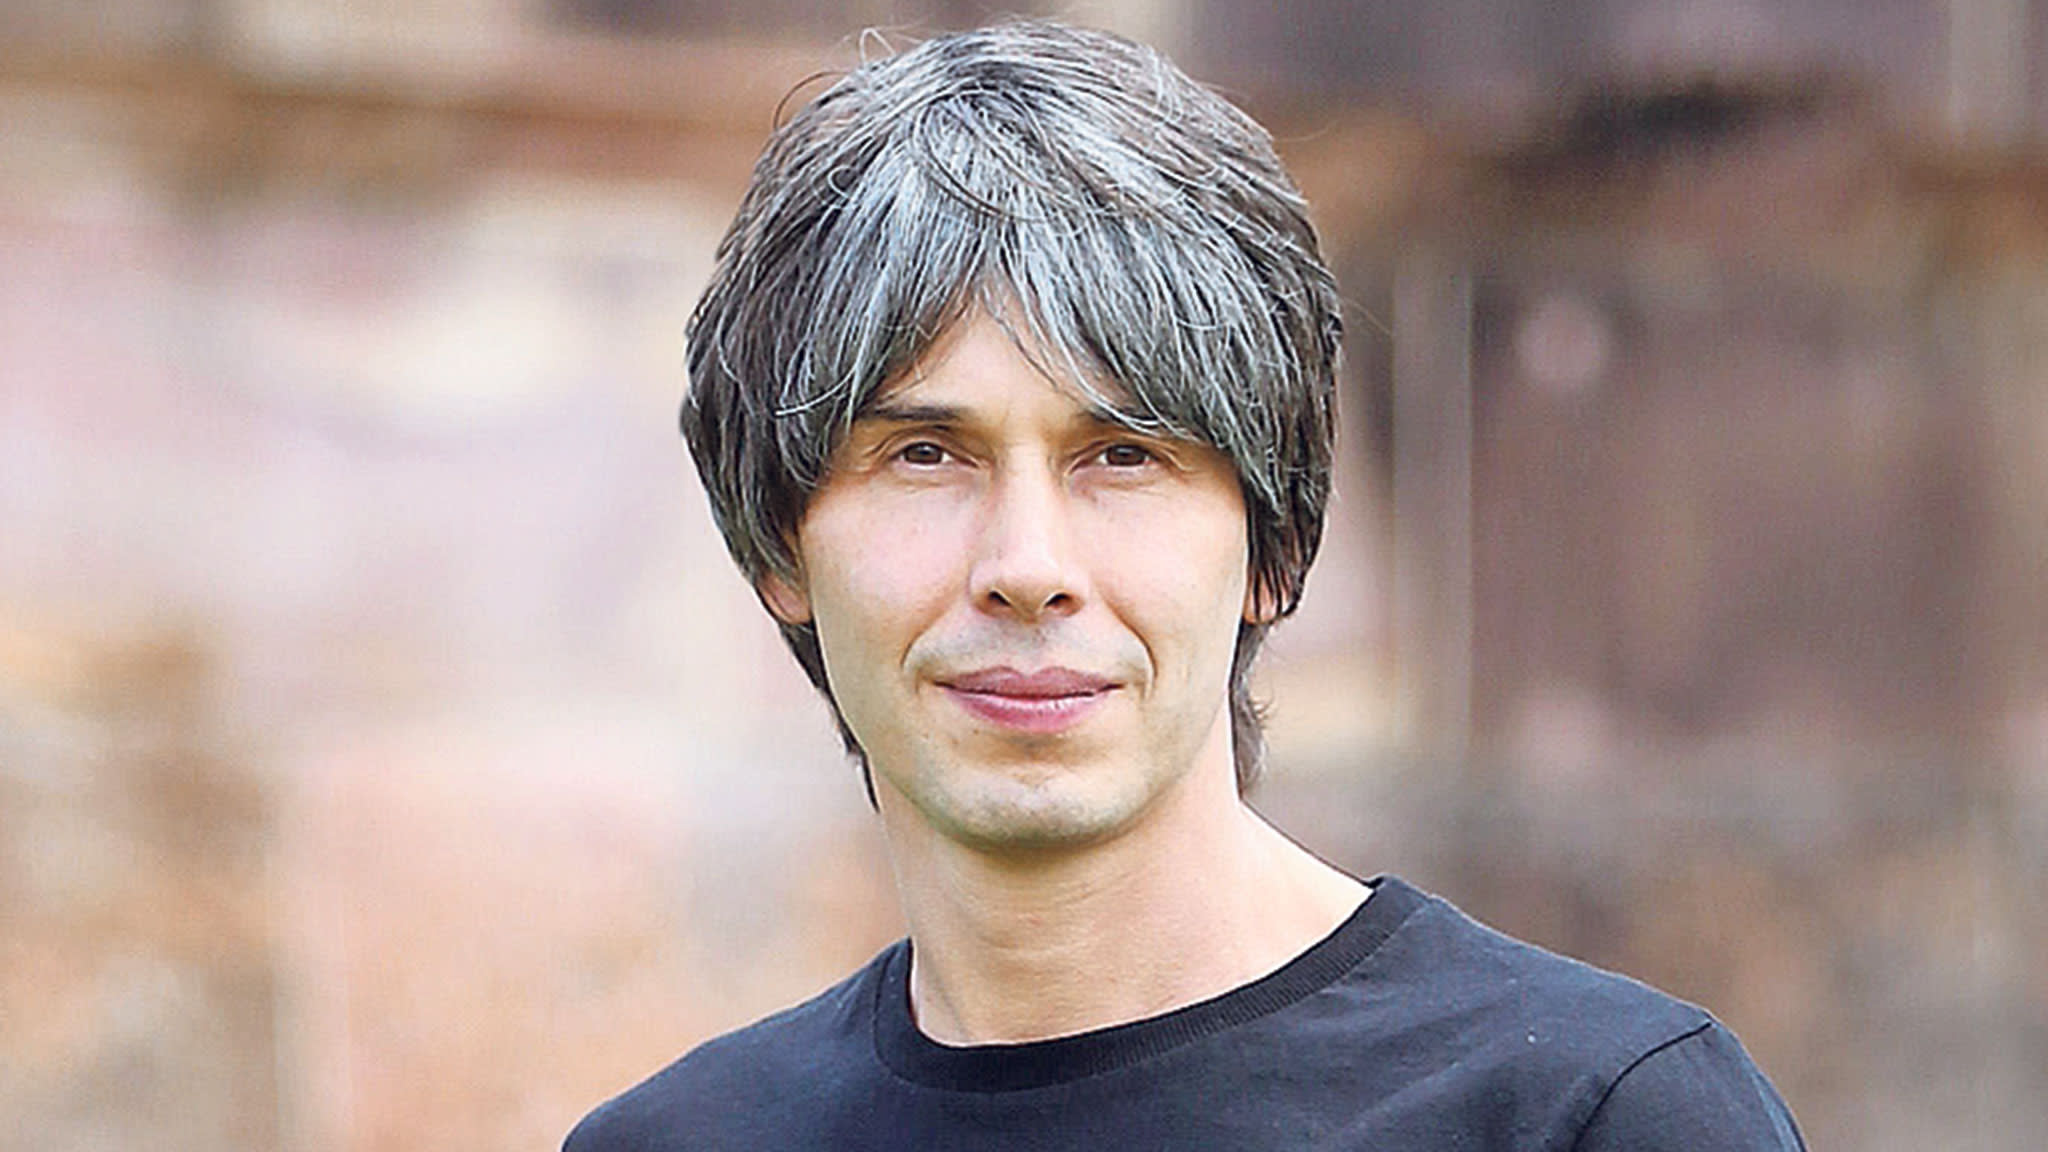 Rockstar professor Brian Cox sees the future in science | Financial Times